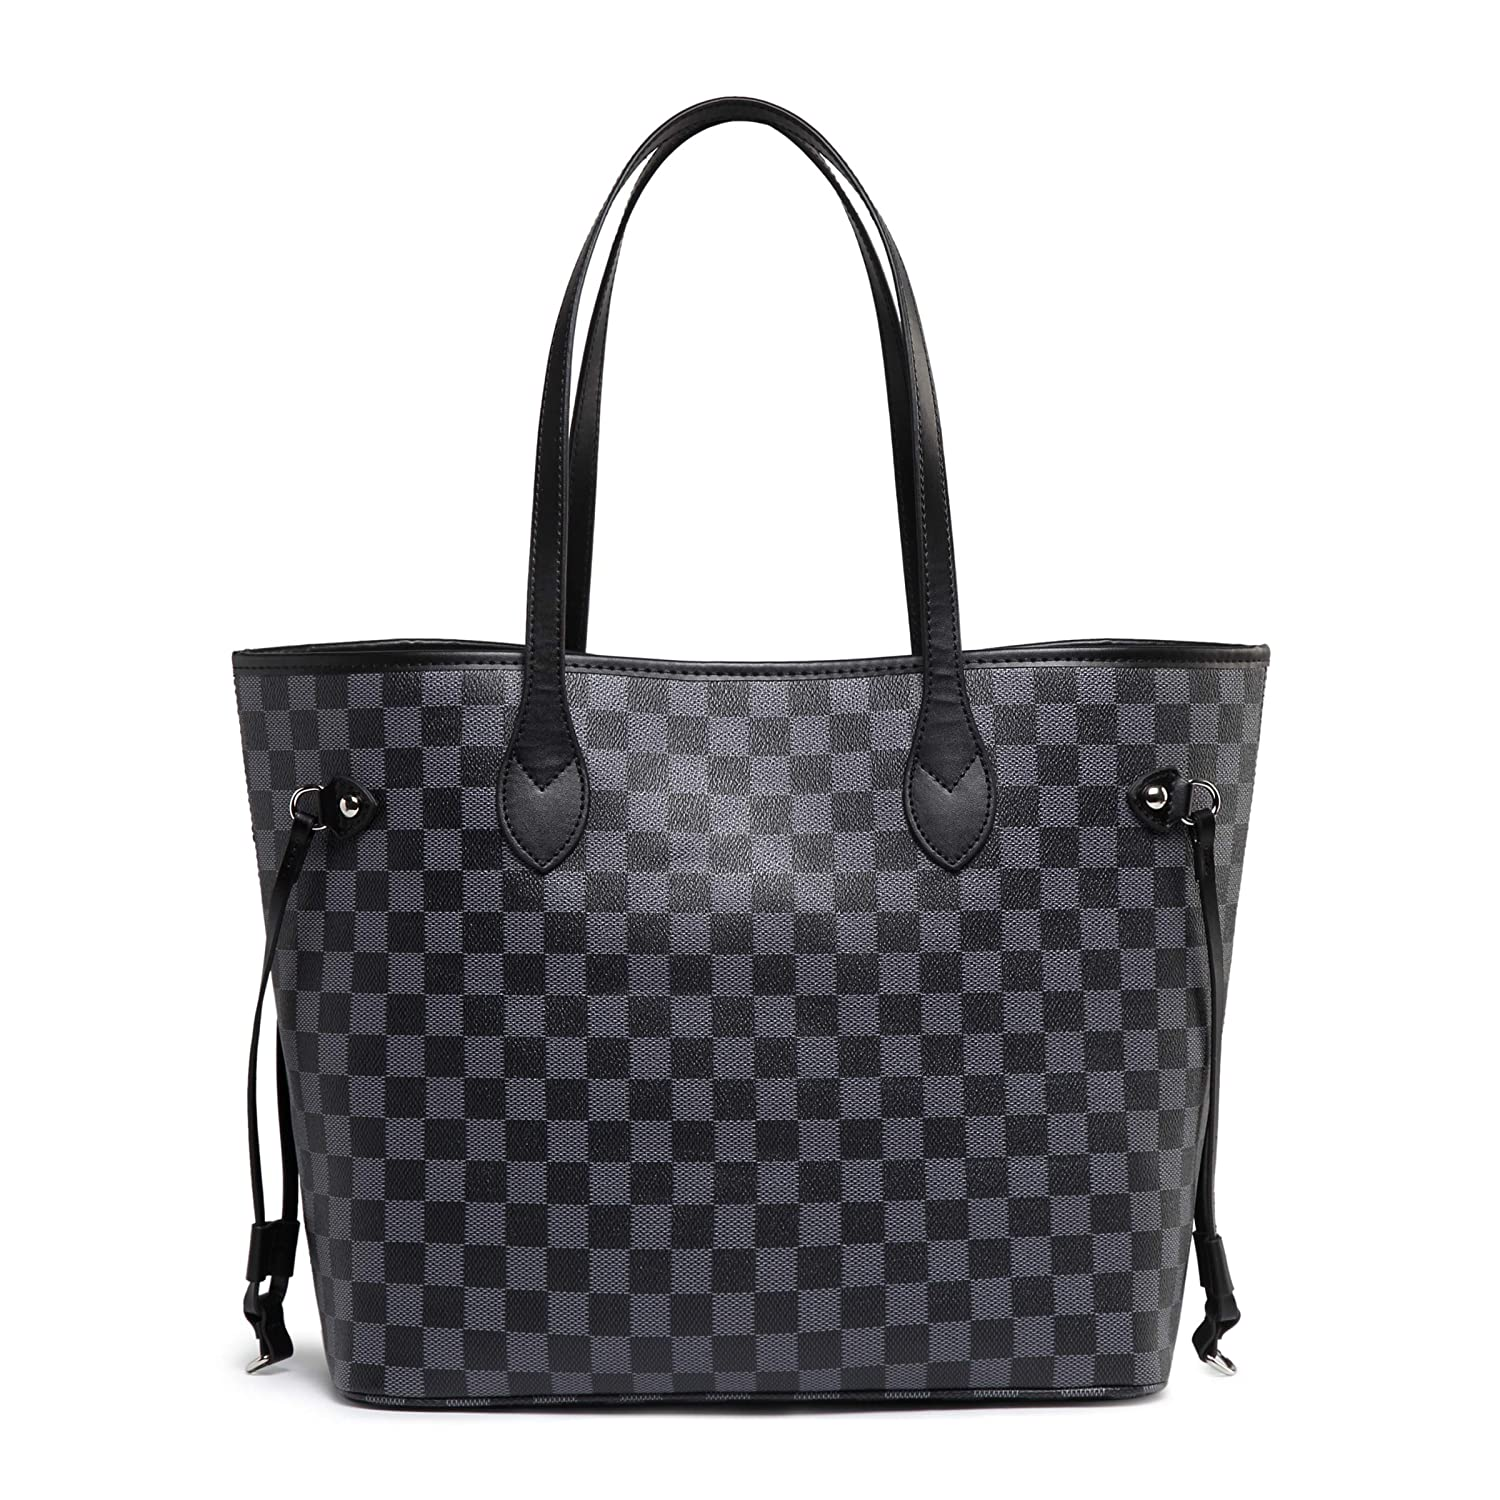 6afbb7d155cc Daisy Rose Checkered Tote Shoulder Bag with inner pouch - PU Vegan Leather